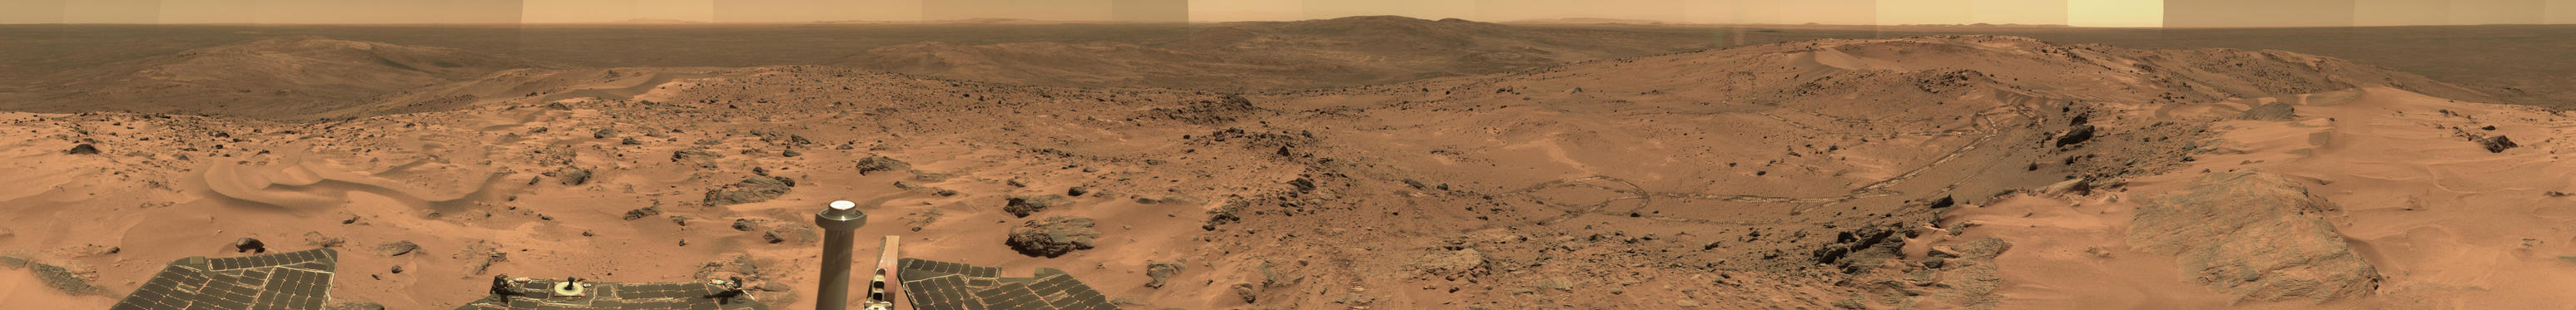 If a human with perfect vision donned a spacesuit and stepped onto the martian surface, the view would be as clear as this sweeping panorama taken by Spirit.